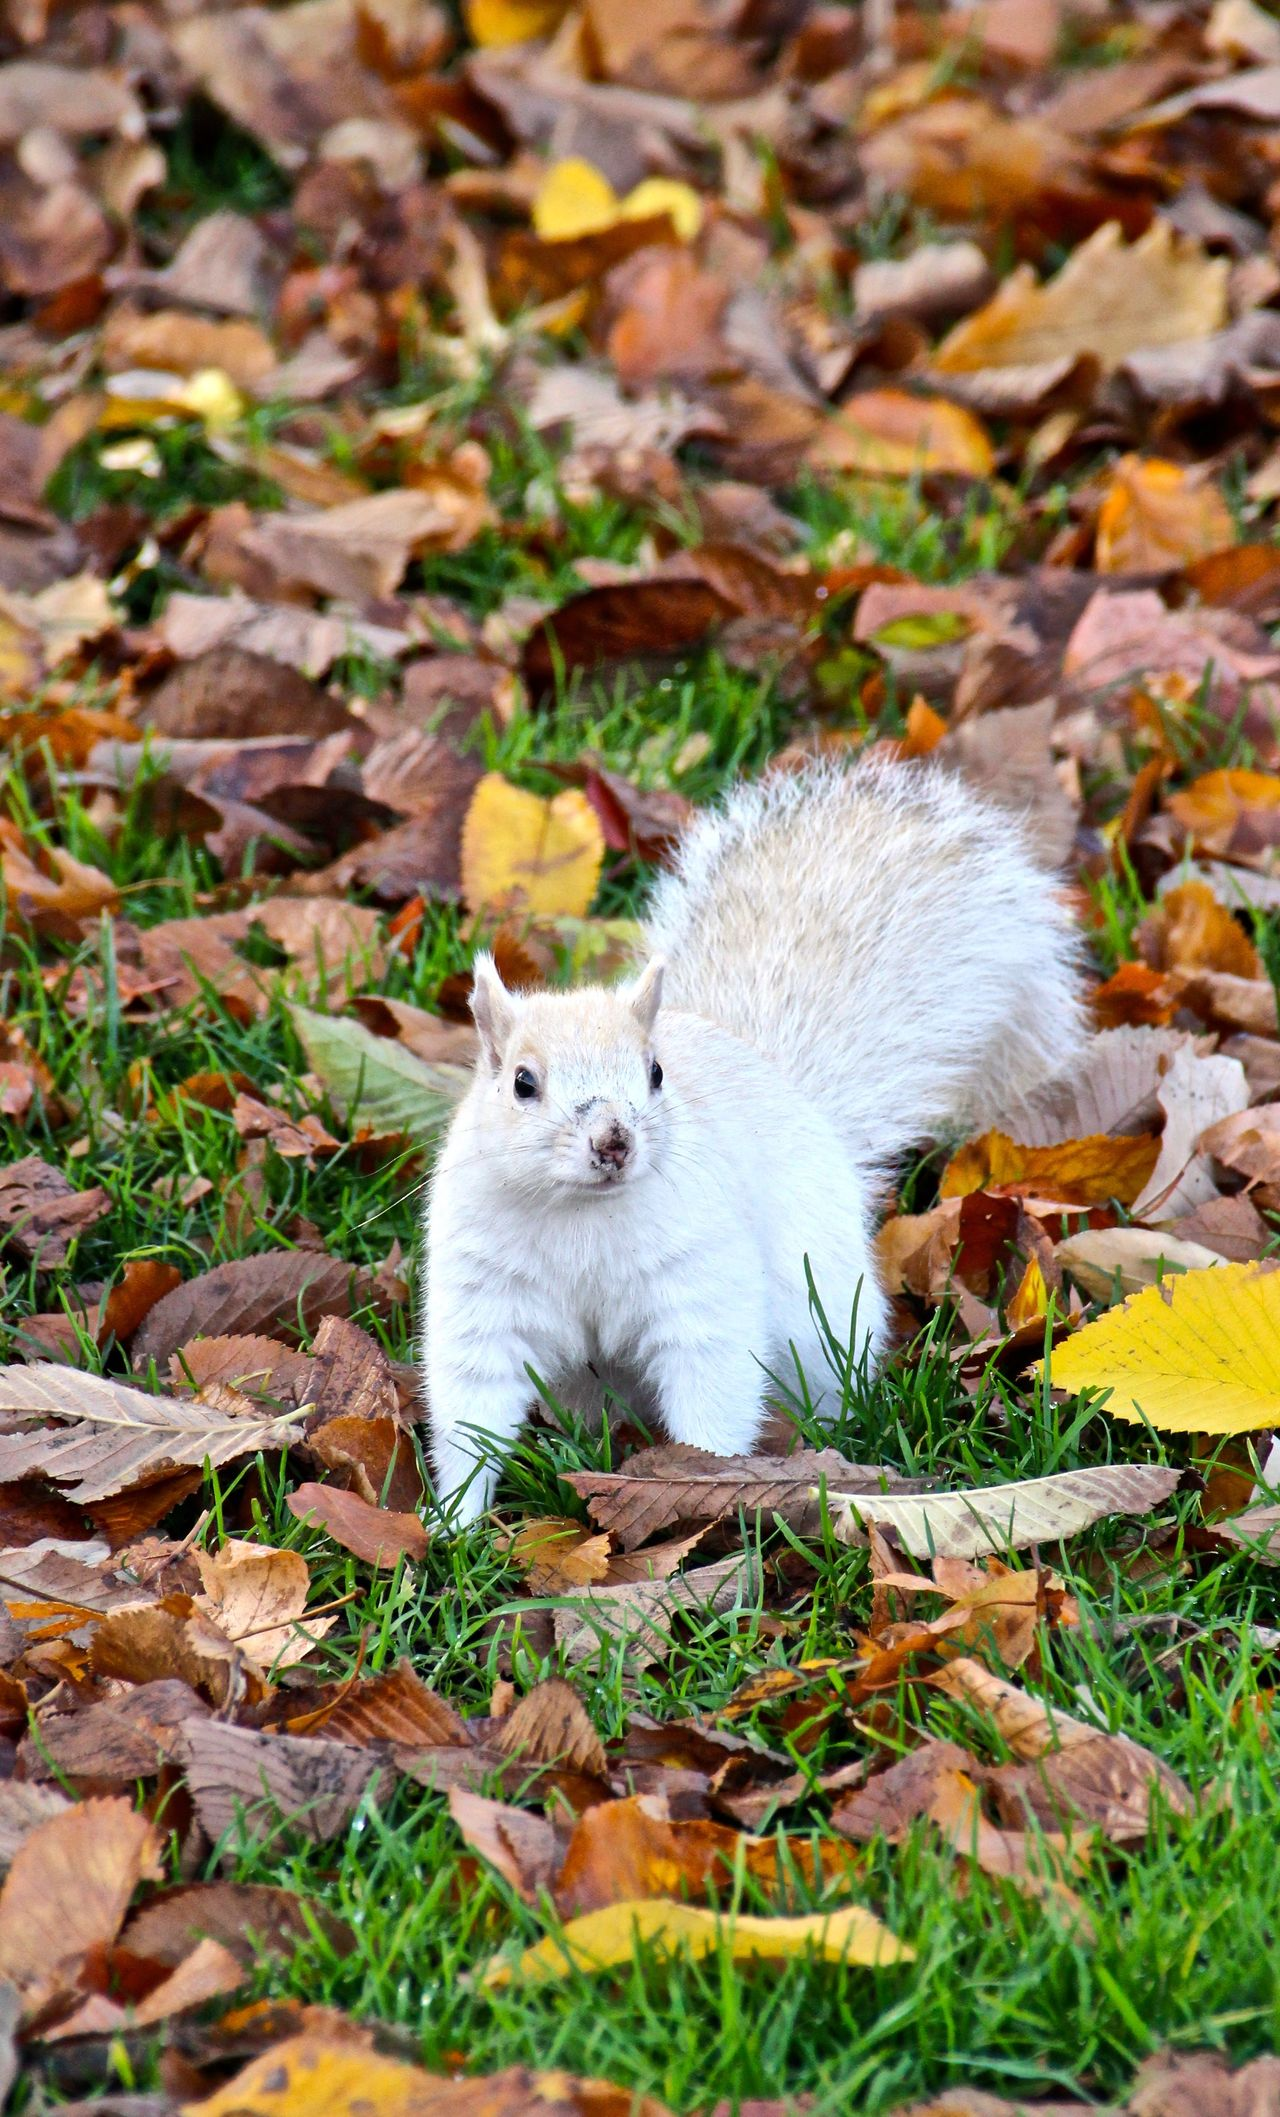 Animal Animal Themes Animals In The Wild Boston Boston Common Close-up Day Eastern Gray Squirrel, Eastern Grey Squirrel Full Length Grass Grey Squirrel Leaf Mammal Massachusetts Mutant Mutation Nature No People One Animal Outdoors Sciurus Carolinensis United States White Morph